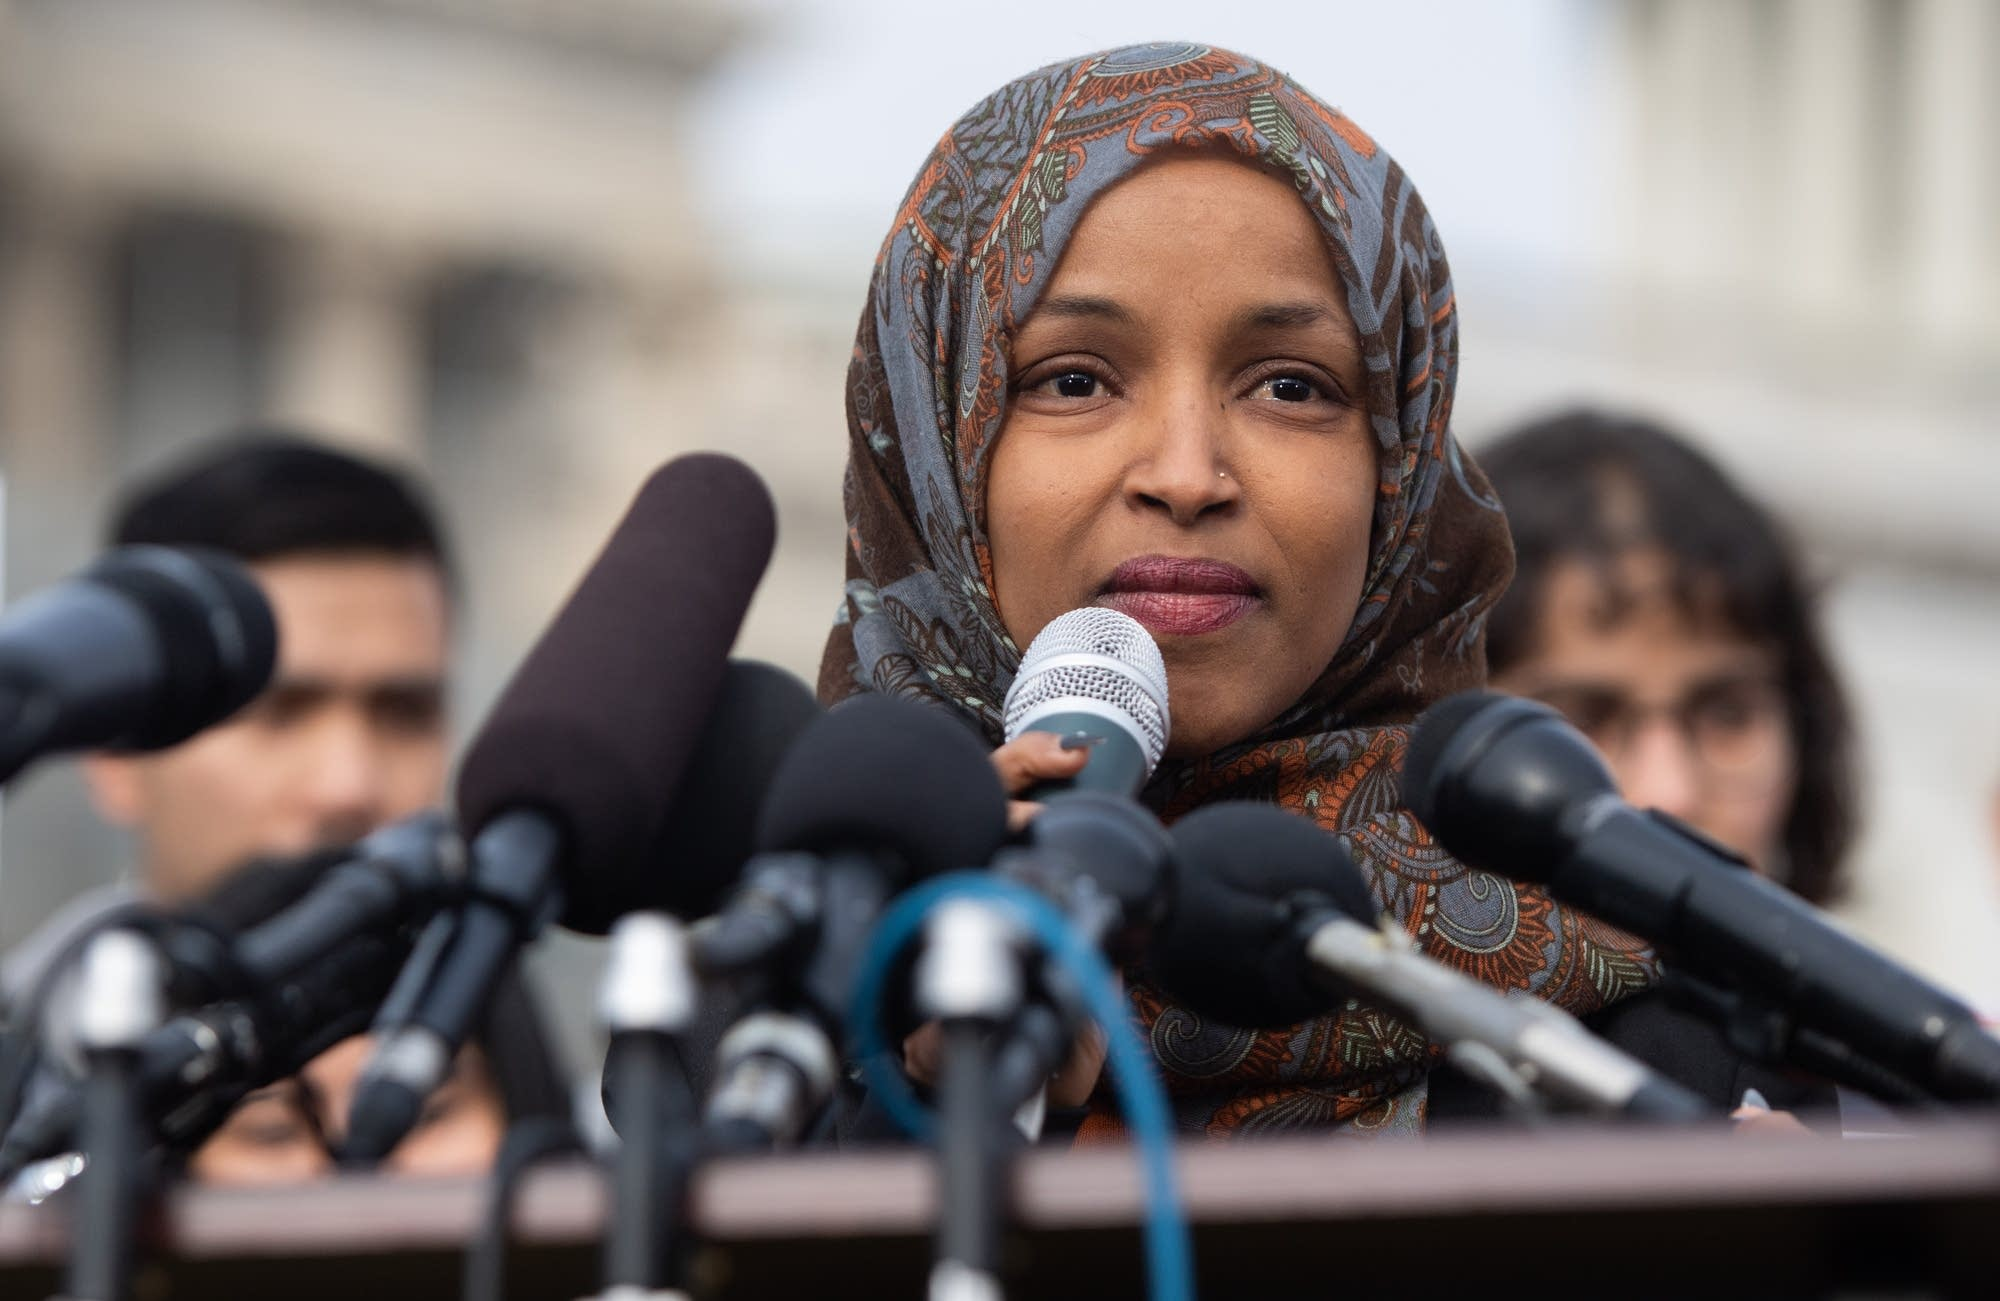 U.S. Rep. Ilhan Omar, D-Minn., speaks during a press conference.